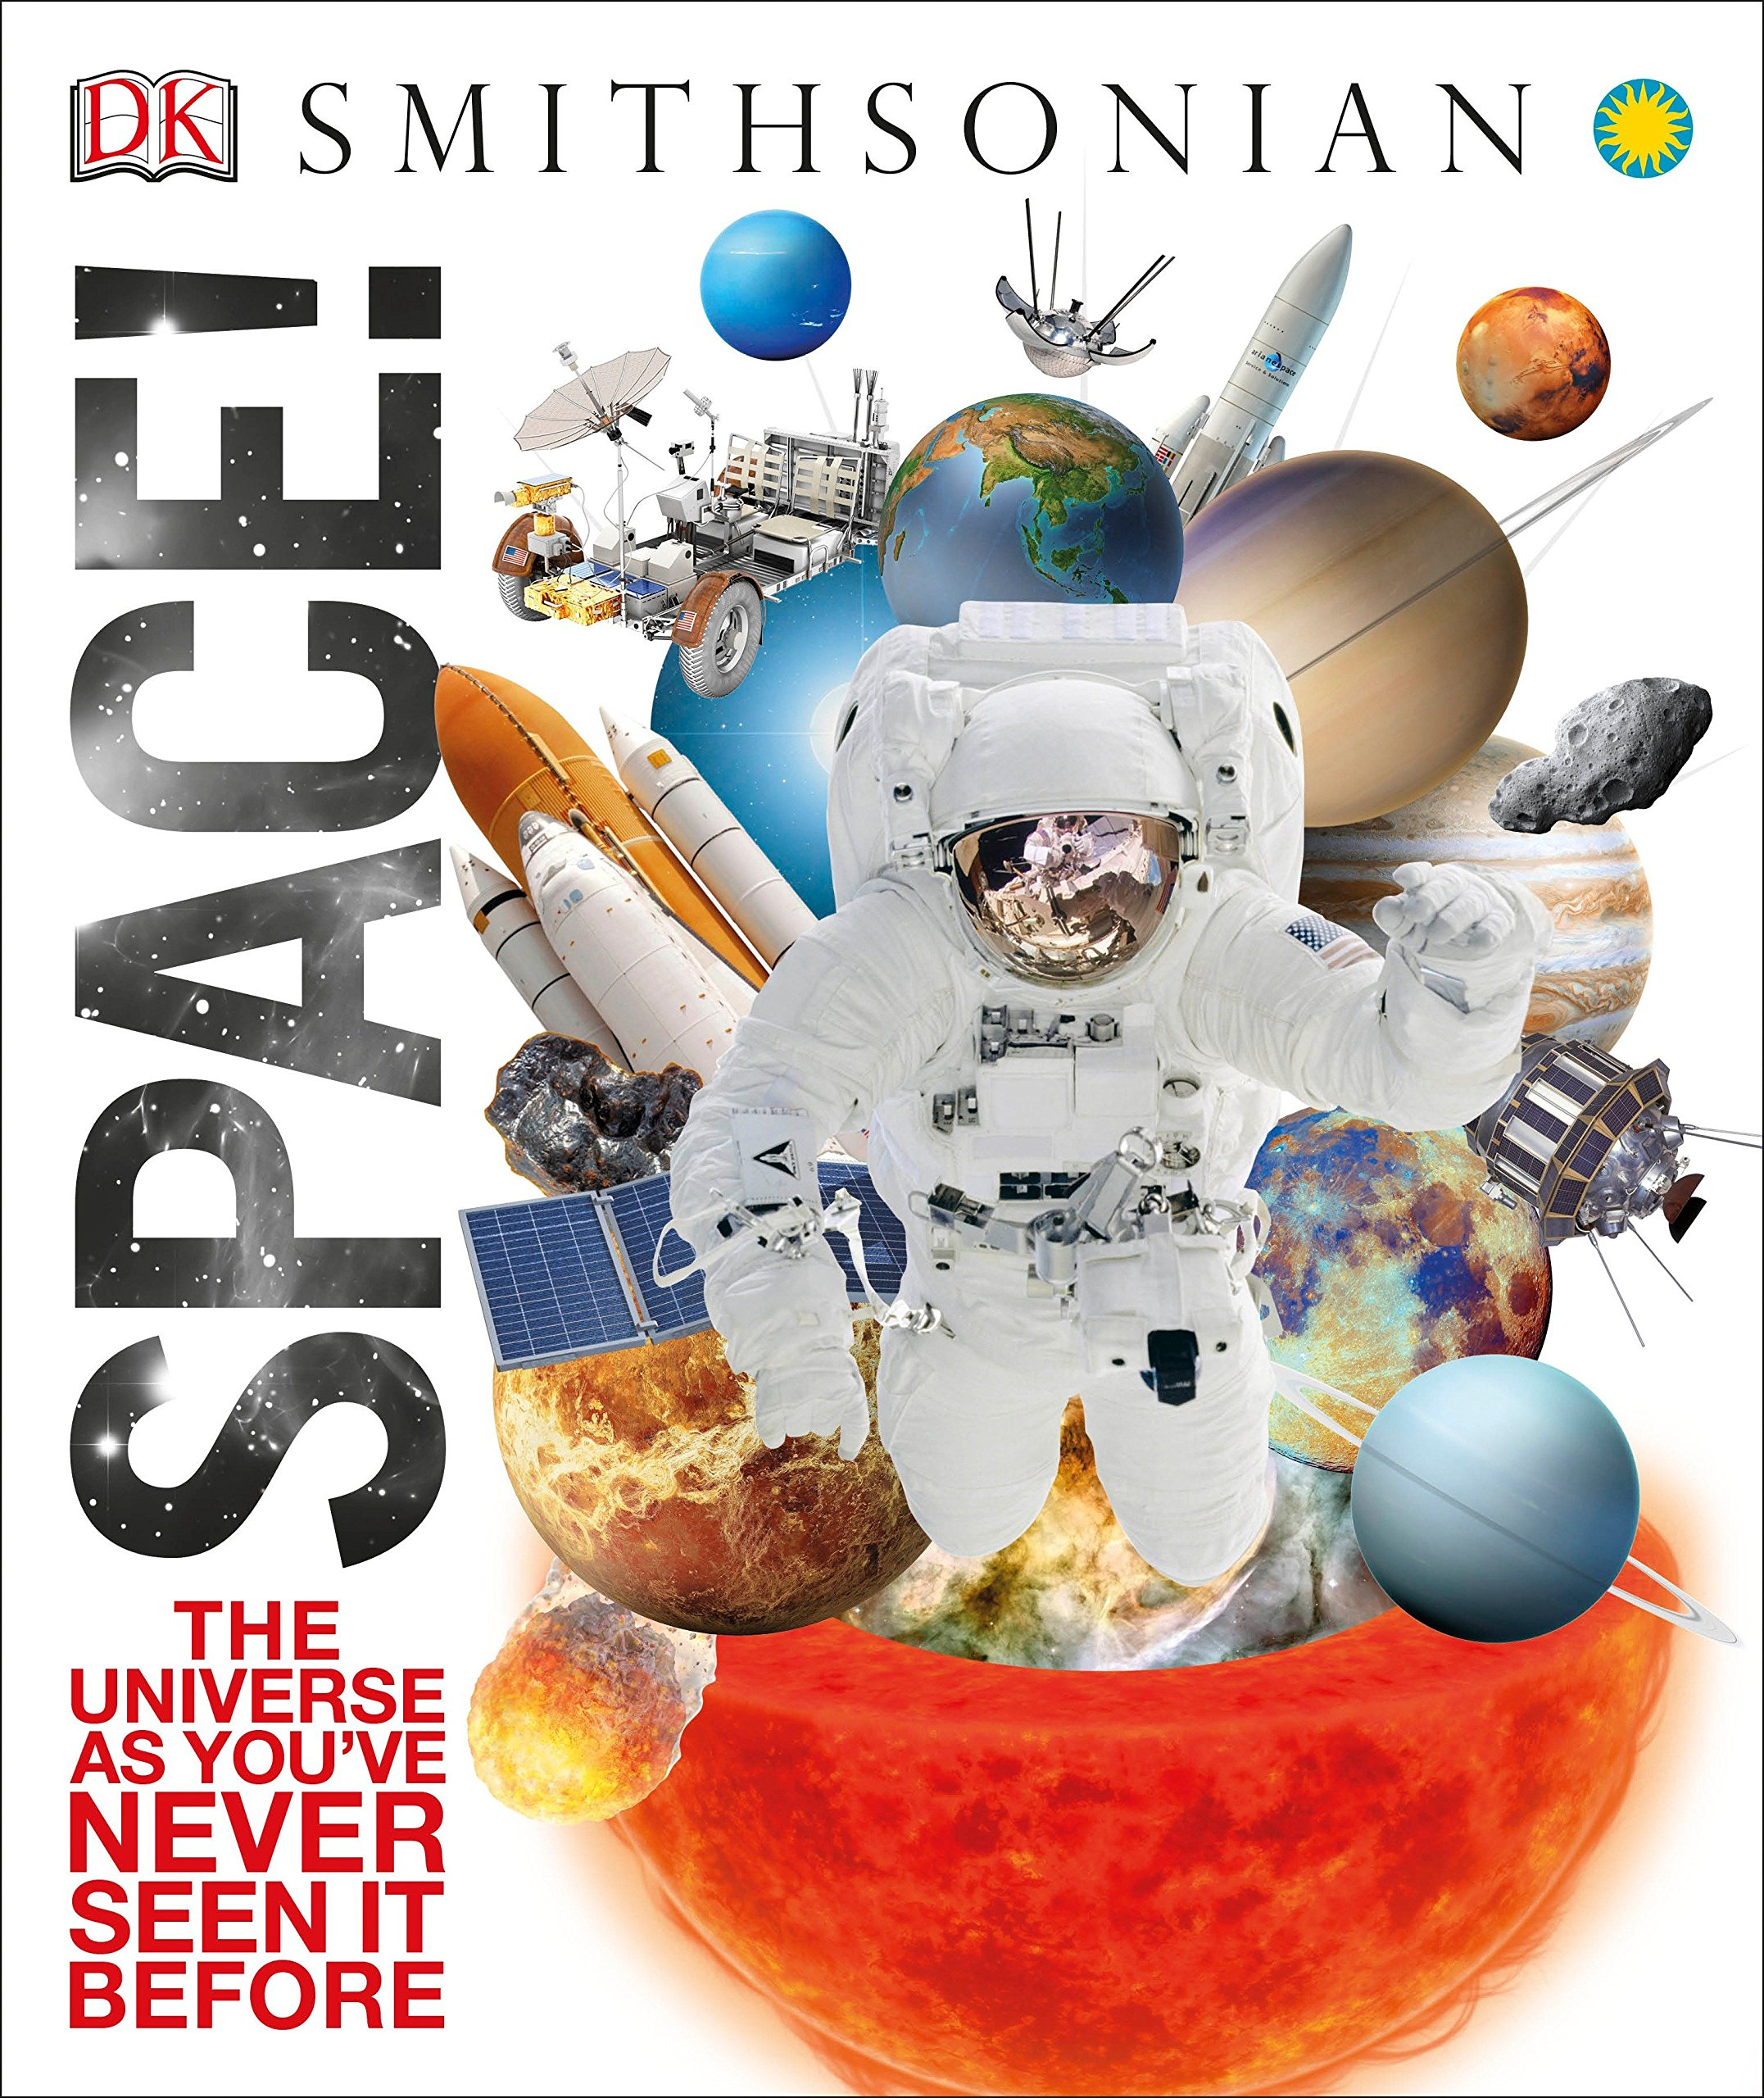 Space!: The Universe as You've Never Seen It Before (Knowledge Encyclopedias) by DK Publishing Dorling Kindersley